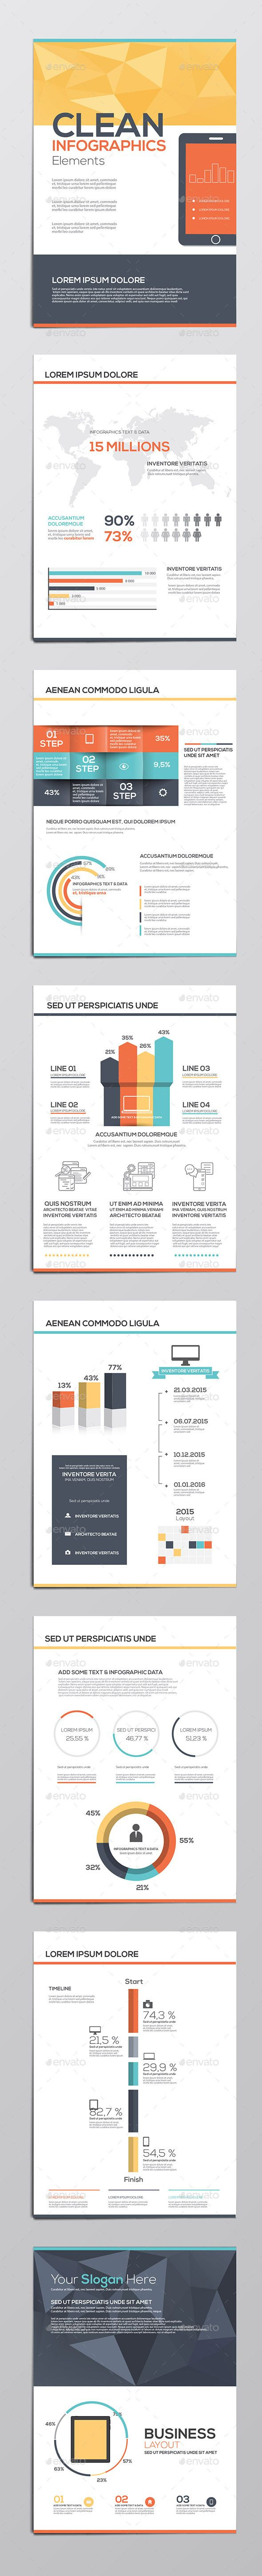 Business Infographics Elements Template #design #vector Download: http://graphicriver.net/item/business-infographics-elements/10314982?ref=ksioks